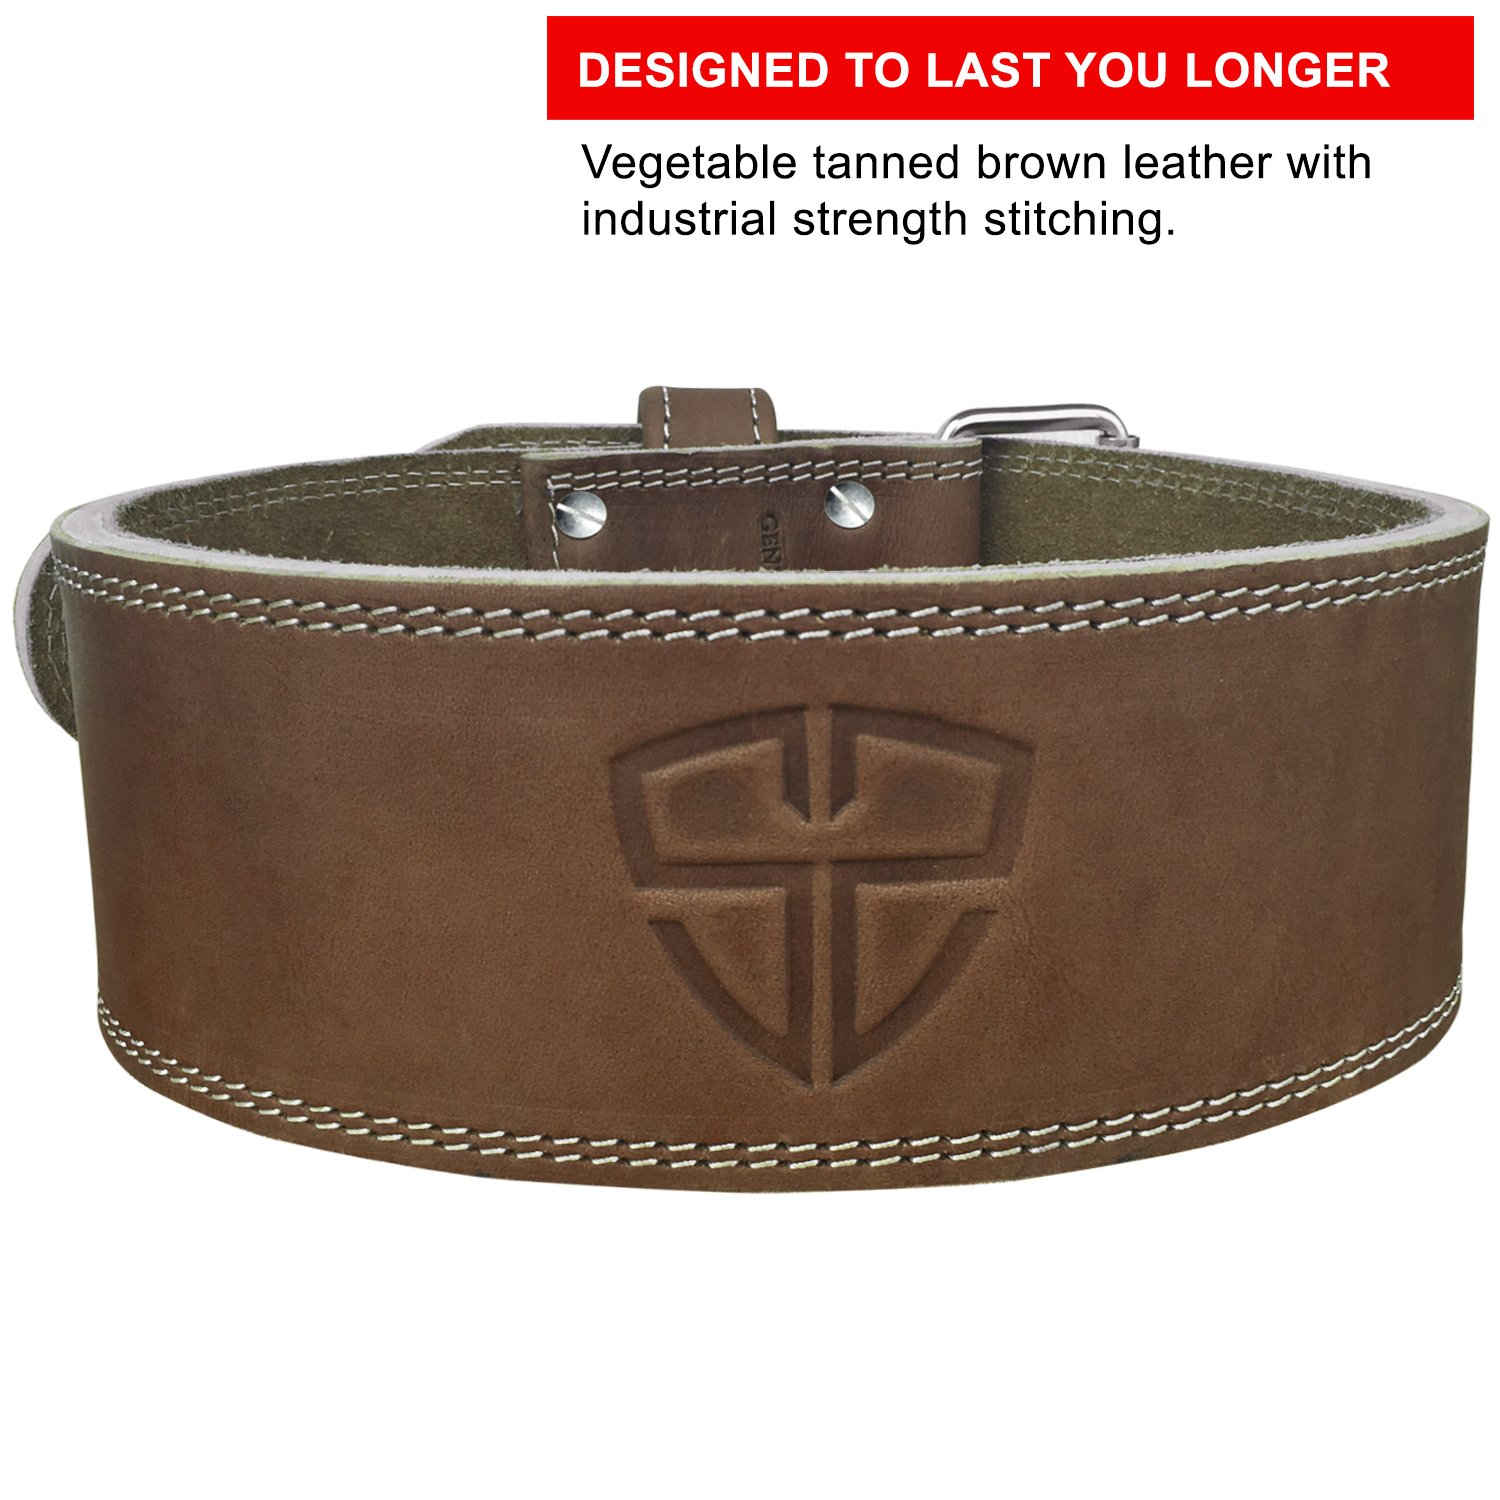 Steel Sweat Weight Lifting Belt - 4 Inches Wide by 10mm - Single Prong Powerlifting Belt That's Heavy Duty - Vegetable Tanned Leather - Hyde XXL by Steel Sweat (Image #2)